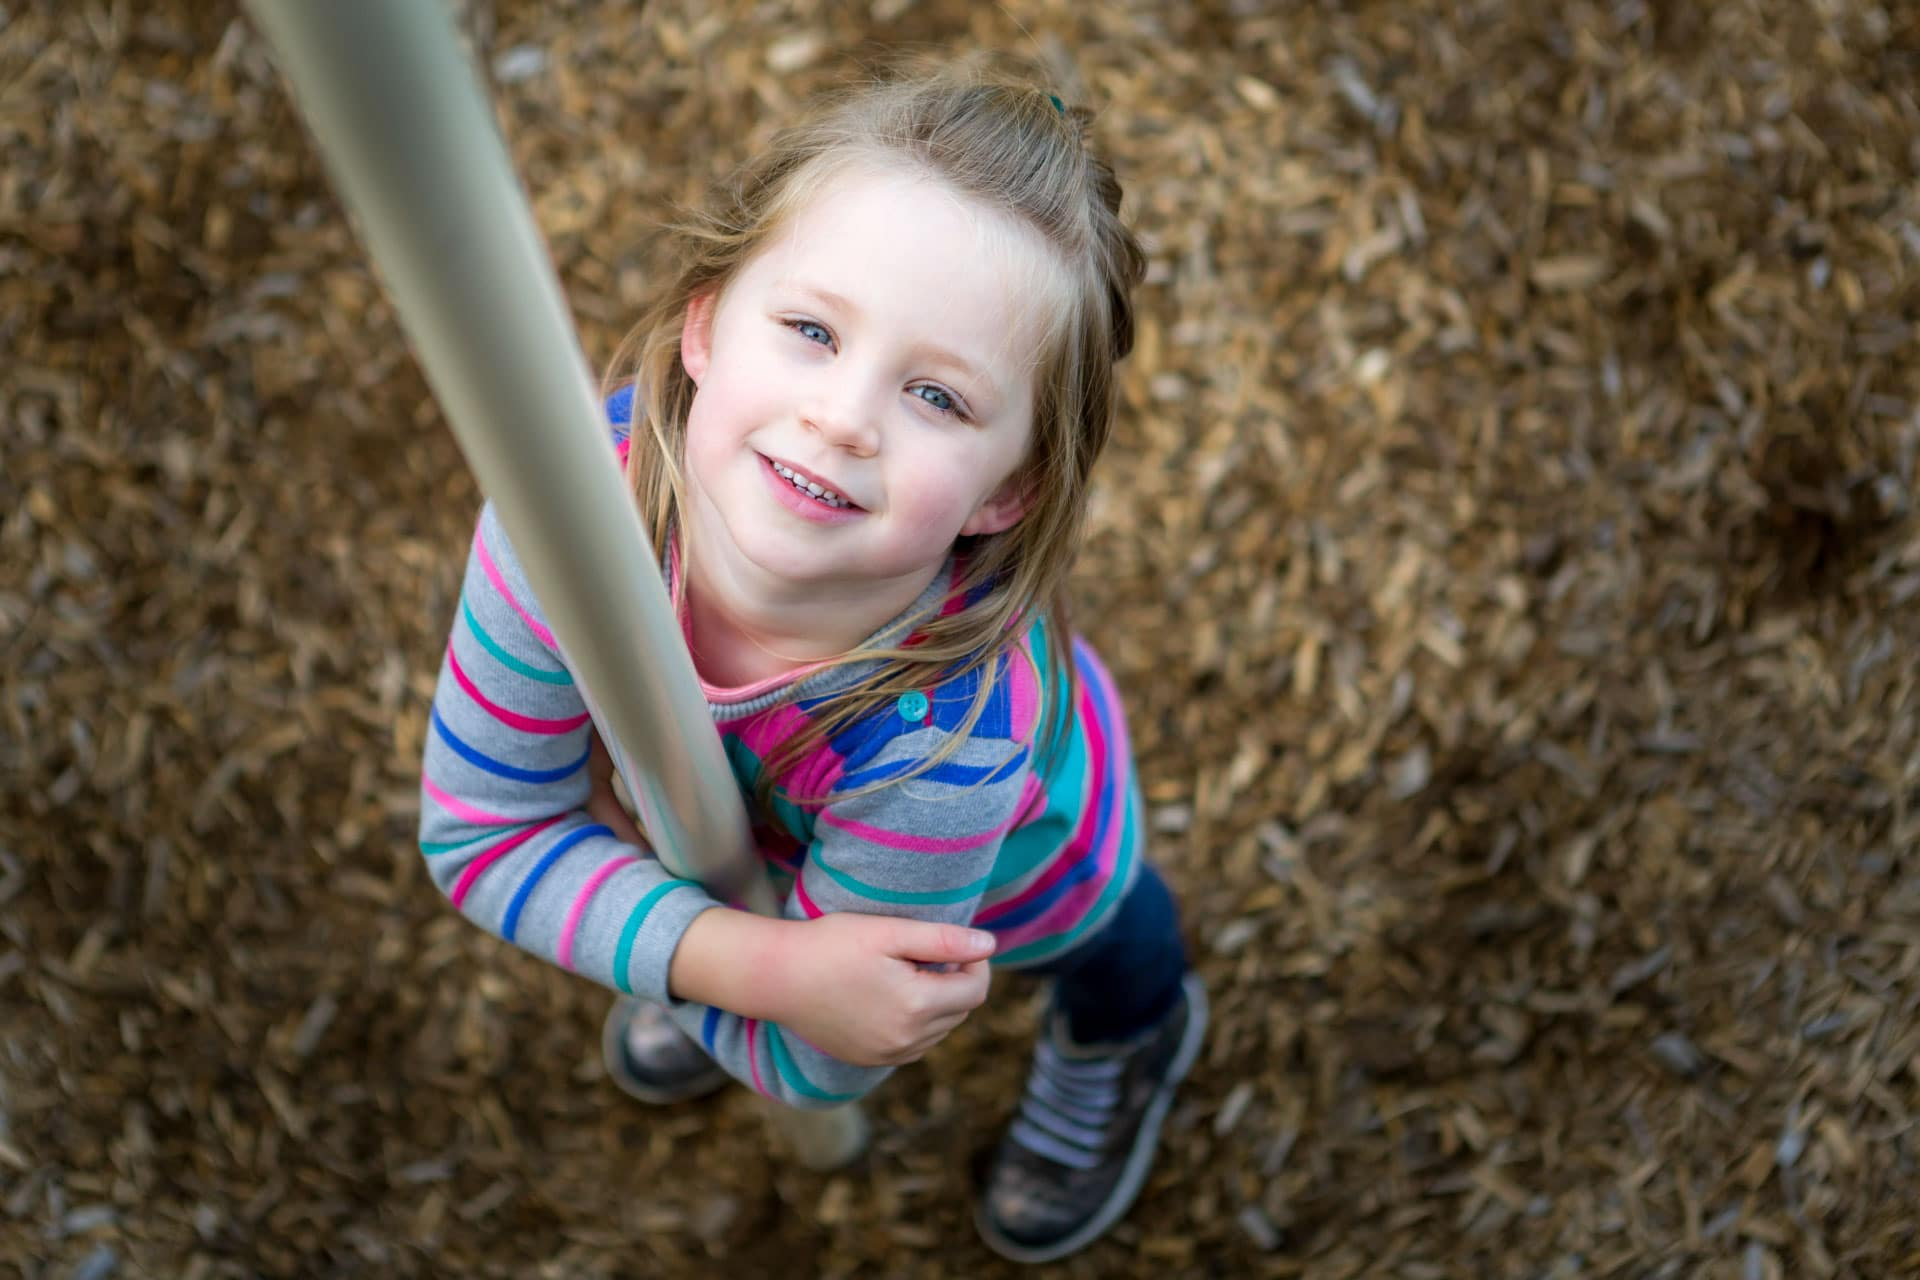 rtp-professional-portrait-family-child-photography-play-park